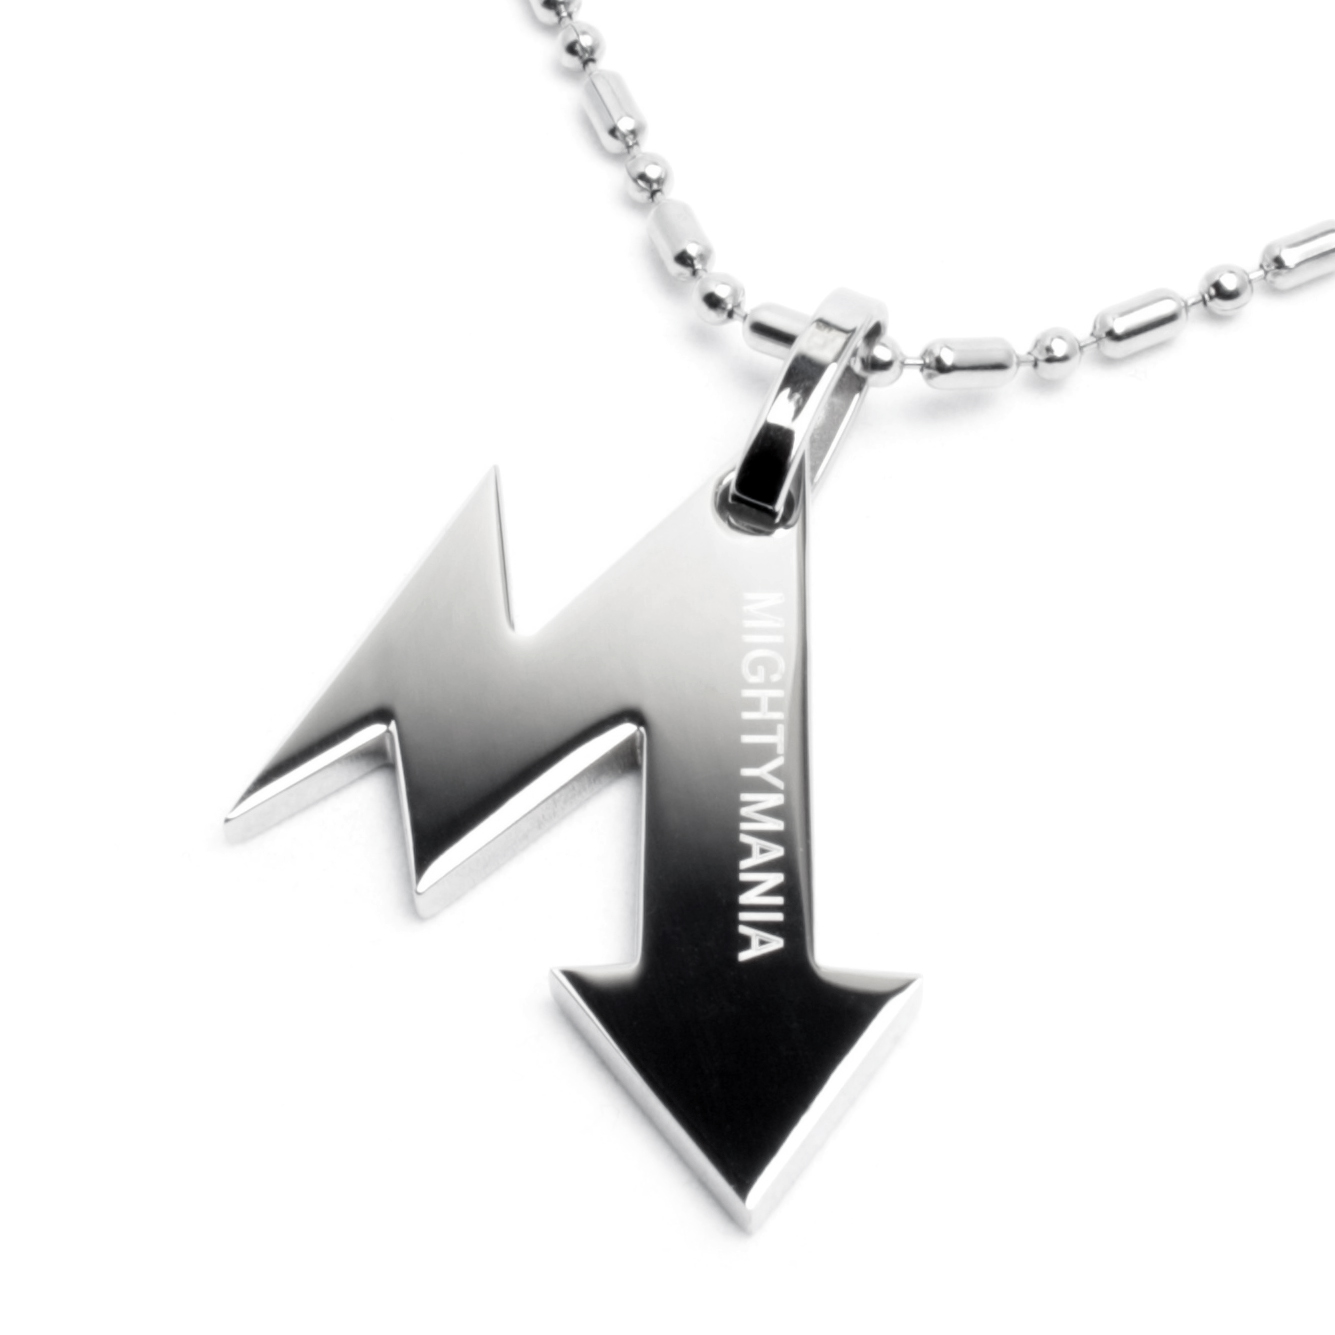 Mightymania pendant